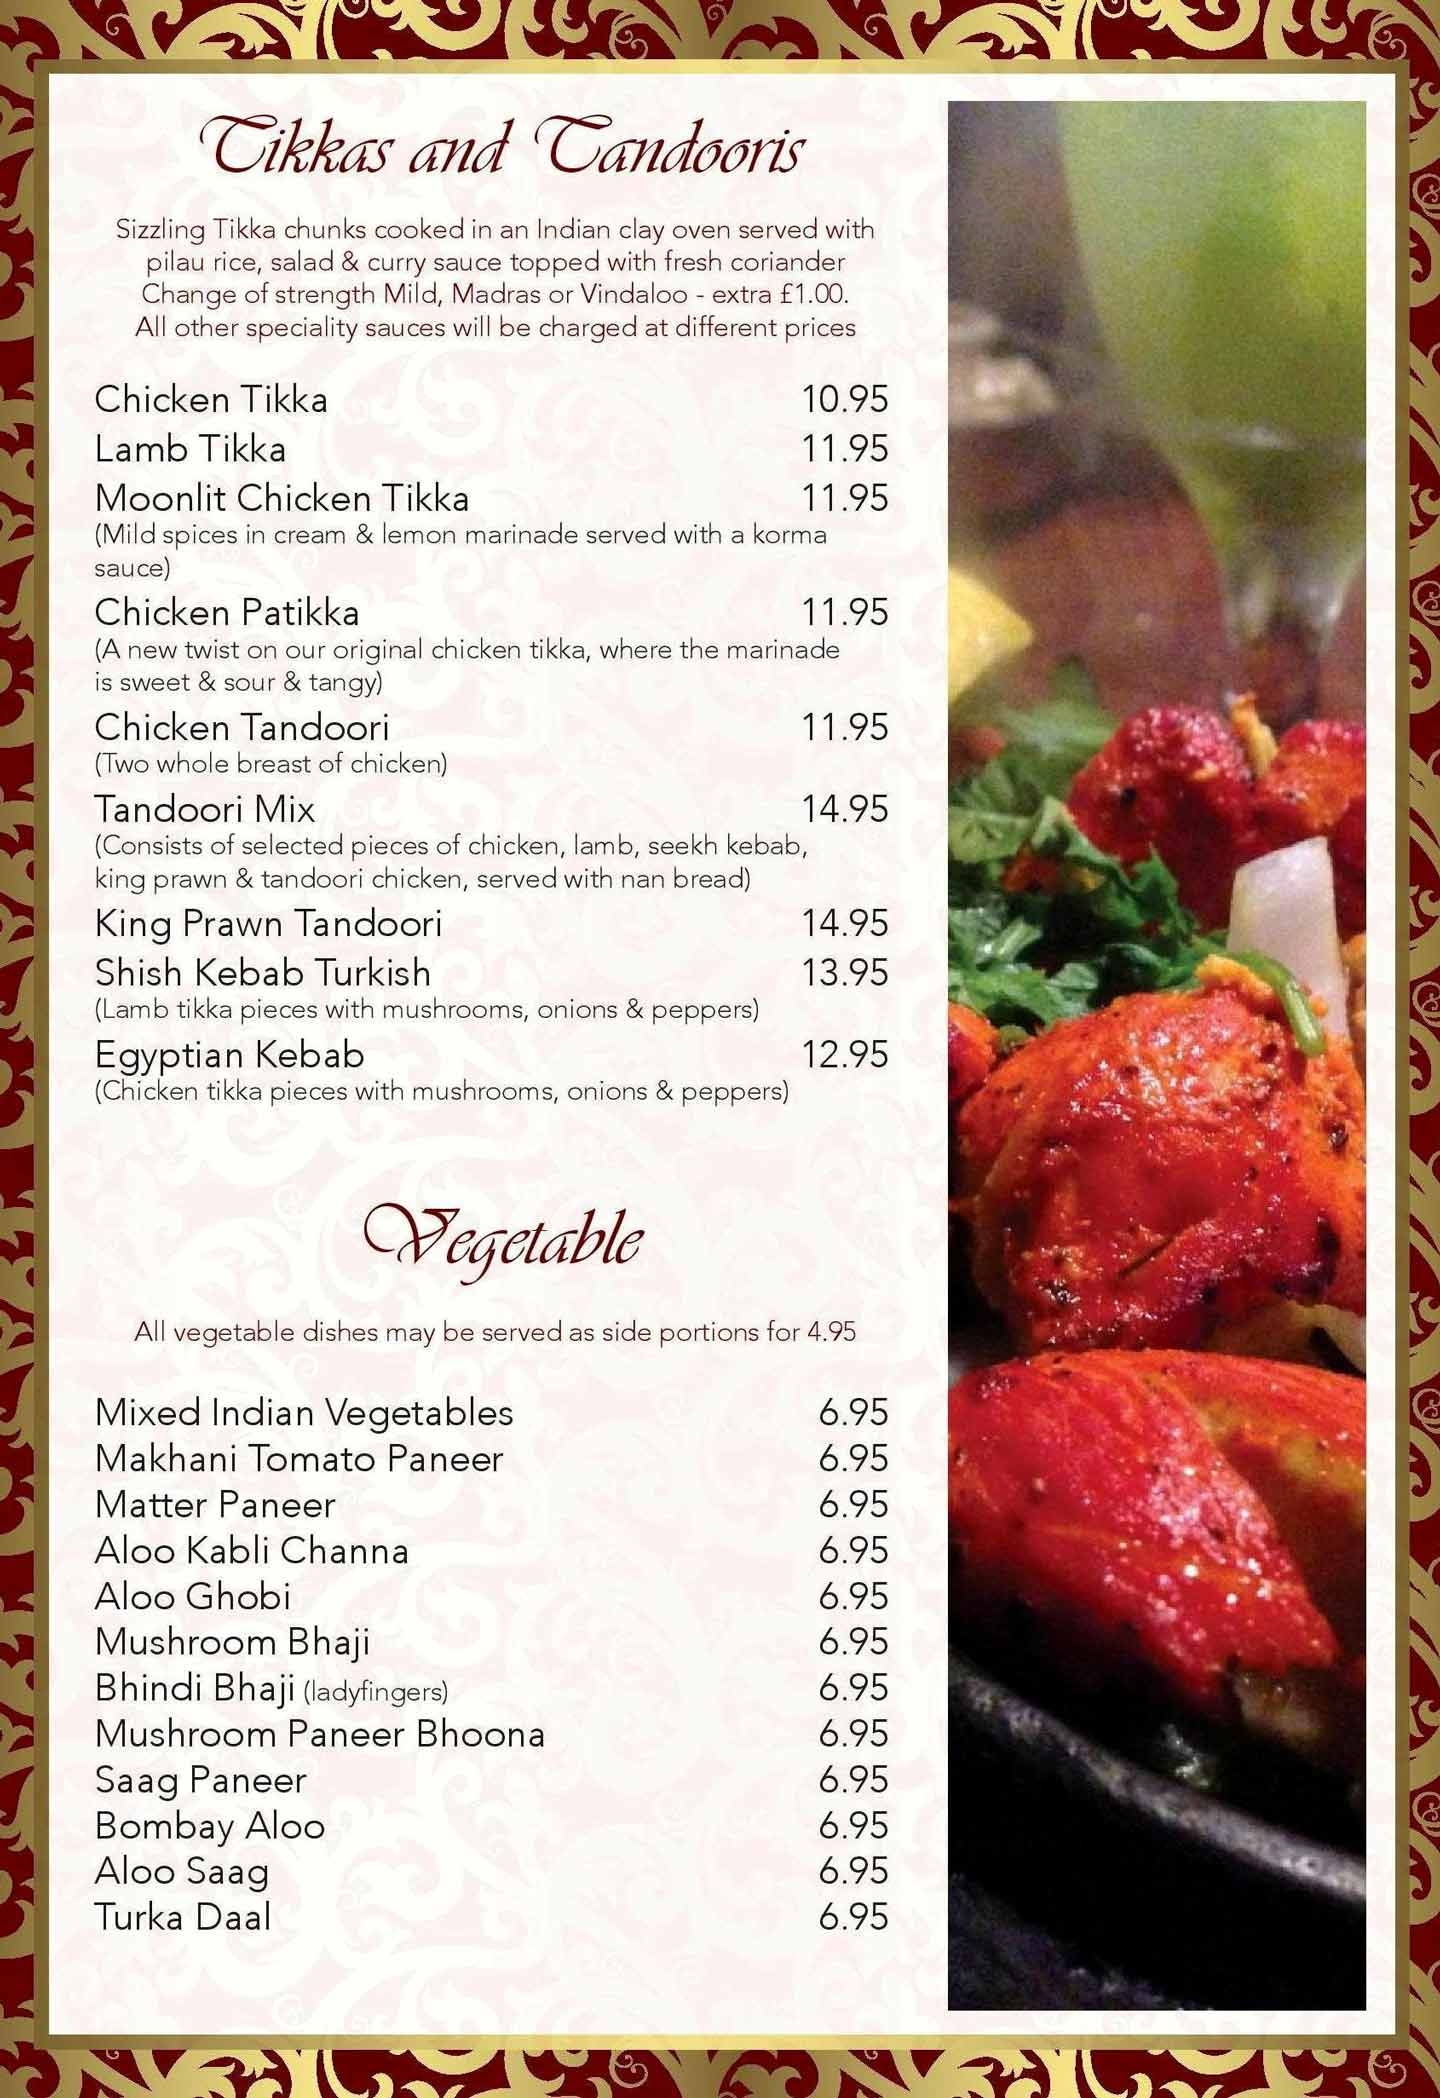 Indian cuisine cumbernauld dalshannon farm to place an order for delivery call 01236 739133 forumfinder Gallery